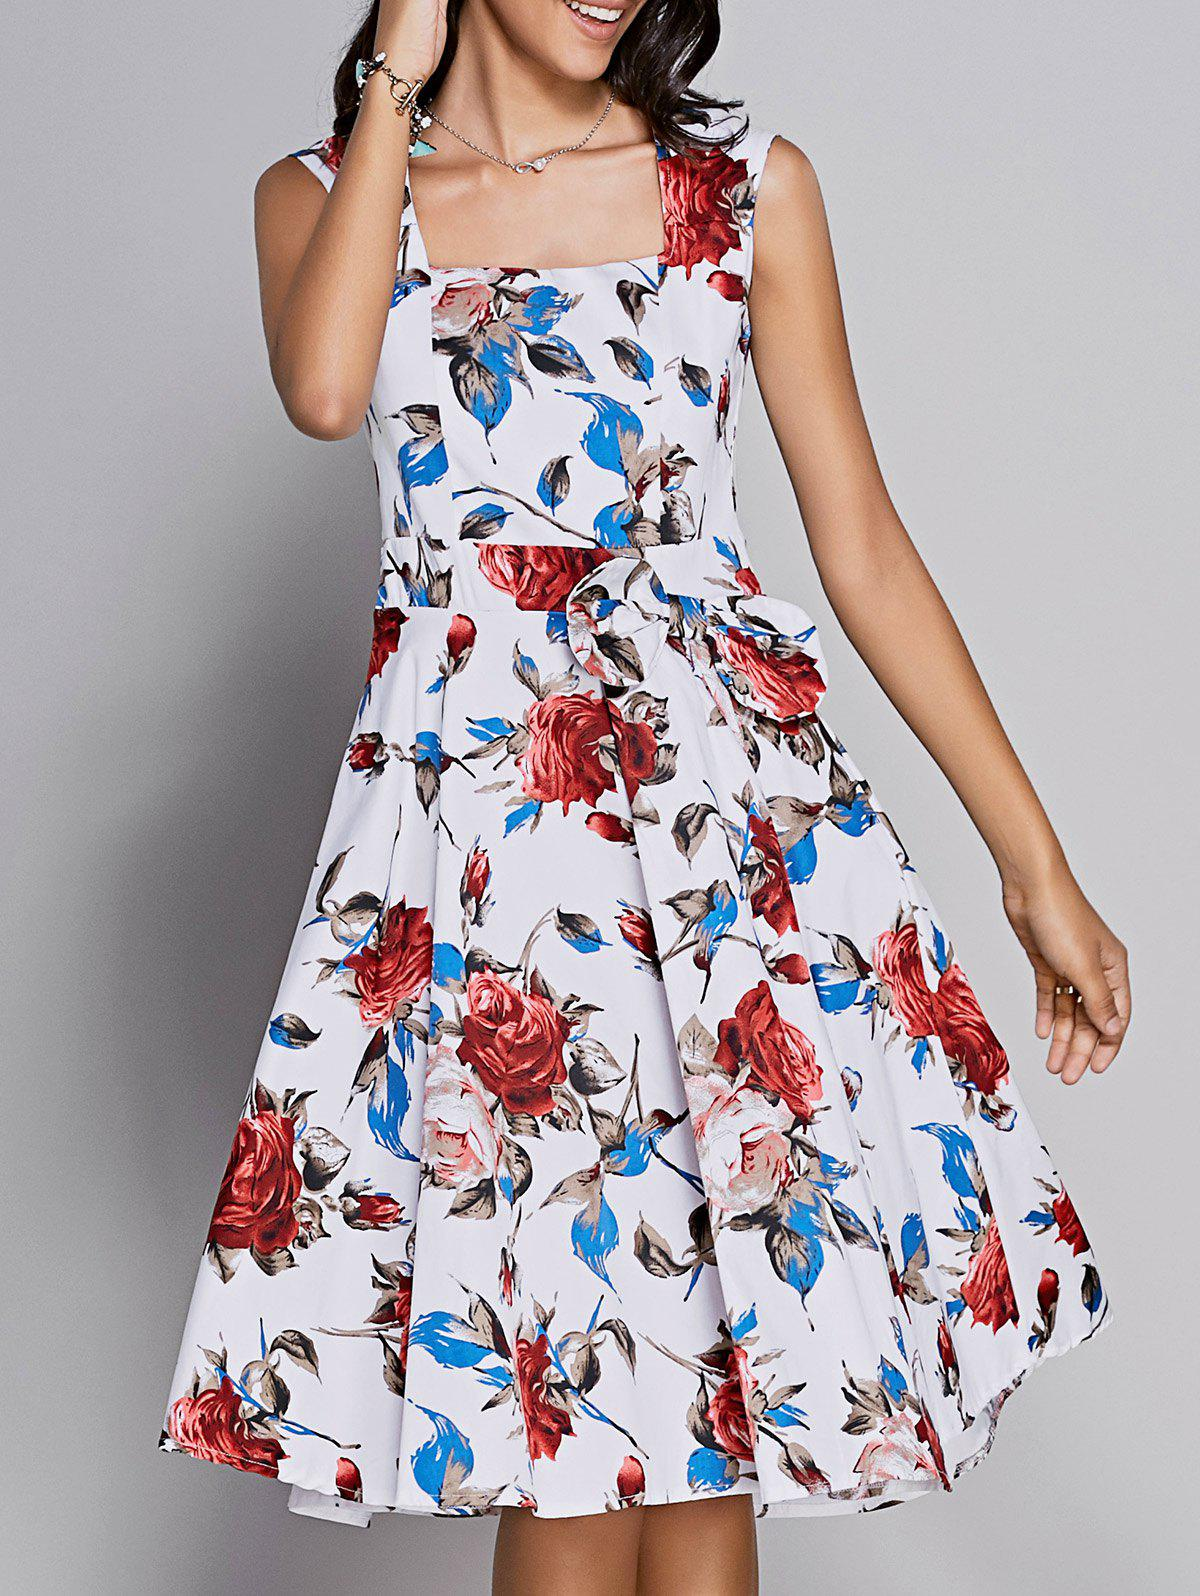 Retro Women's Rose Print Sweetheart Neck Bowknot Embellished Dress